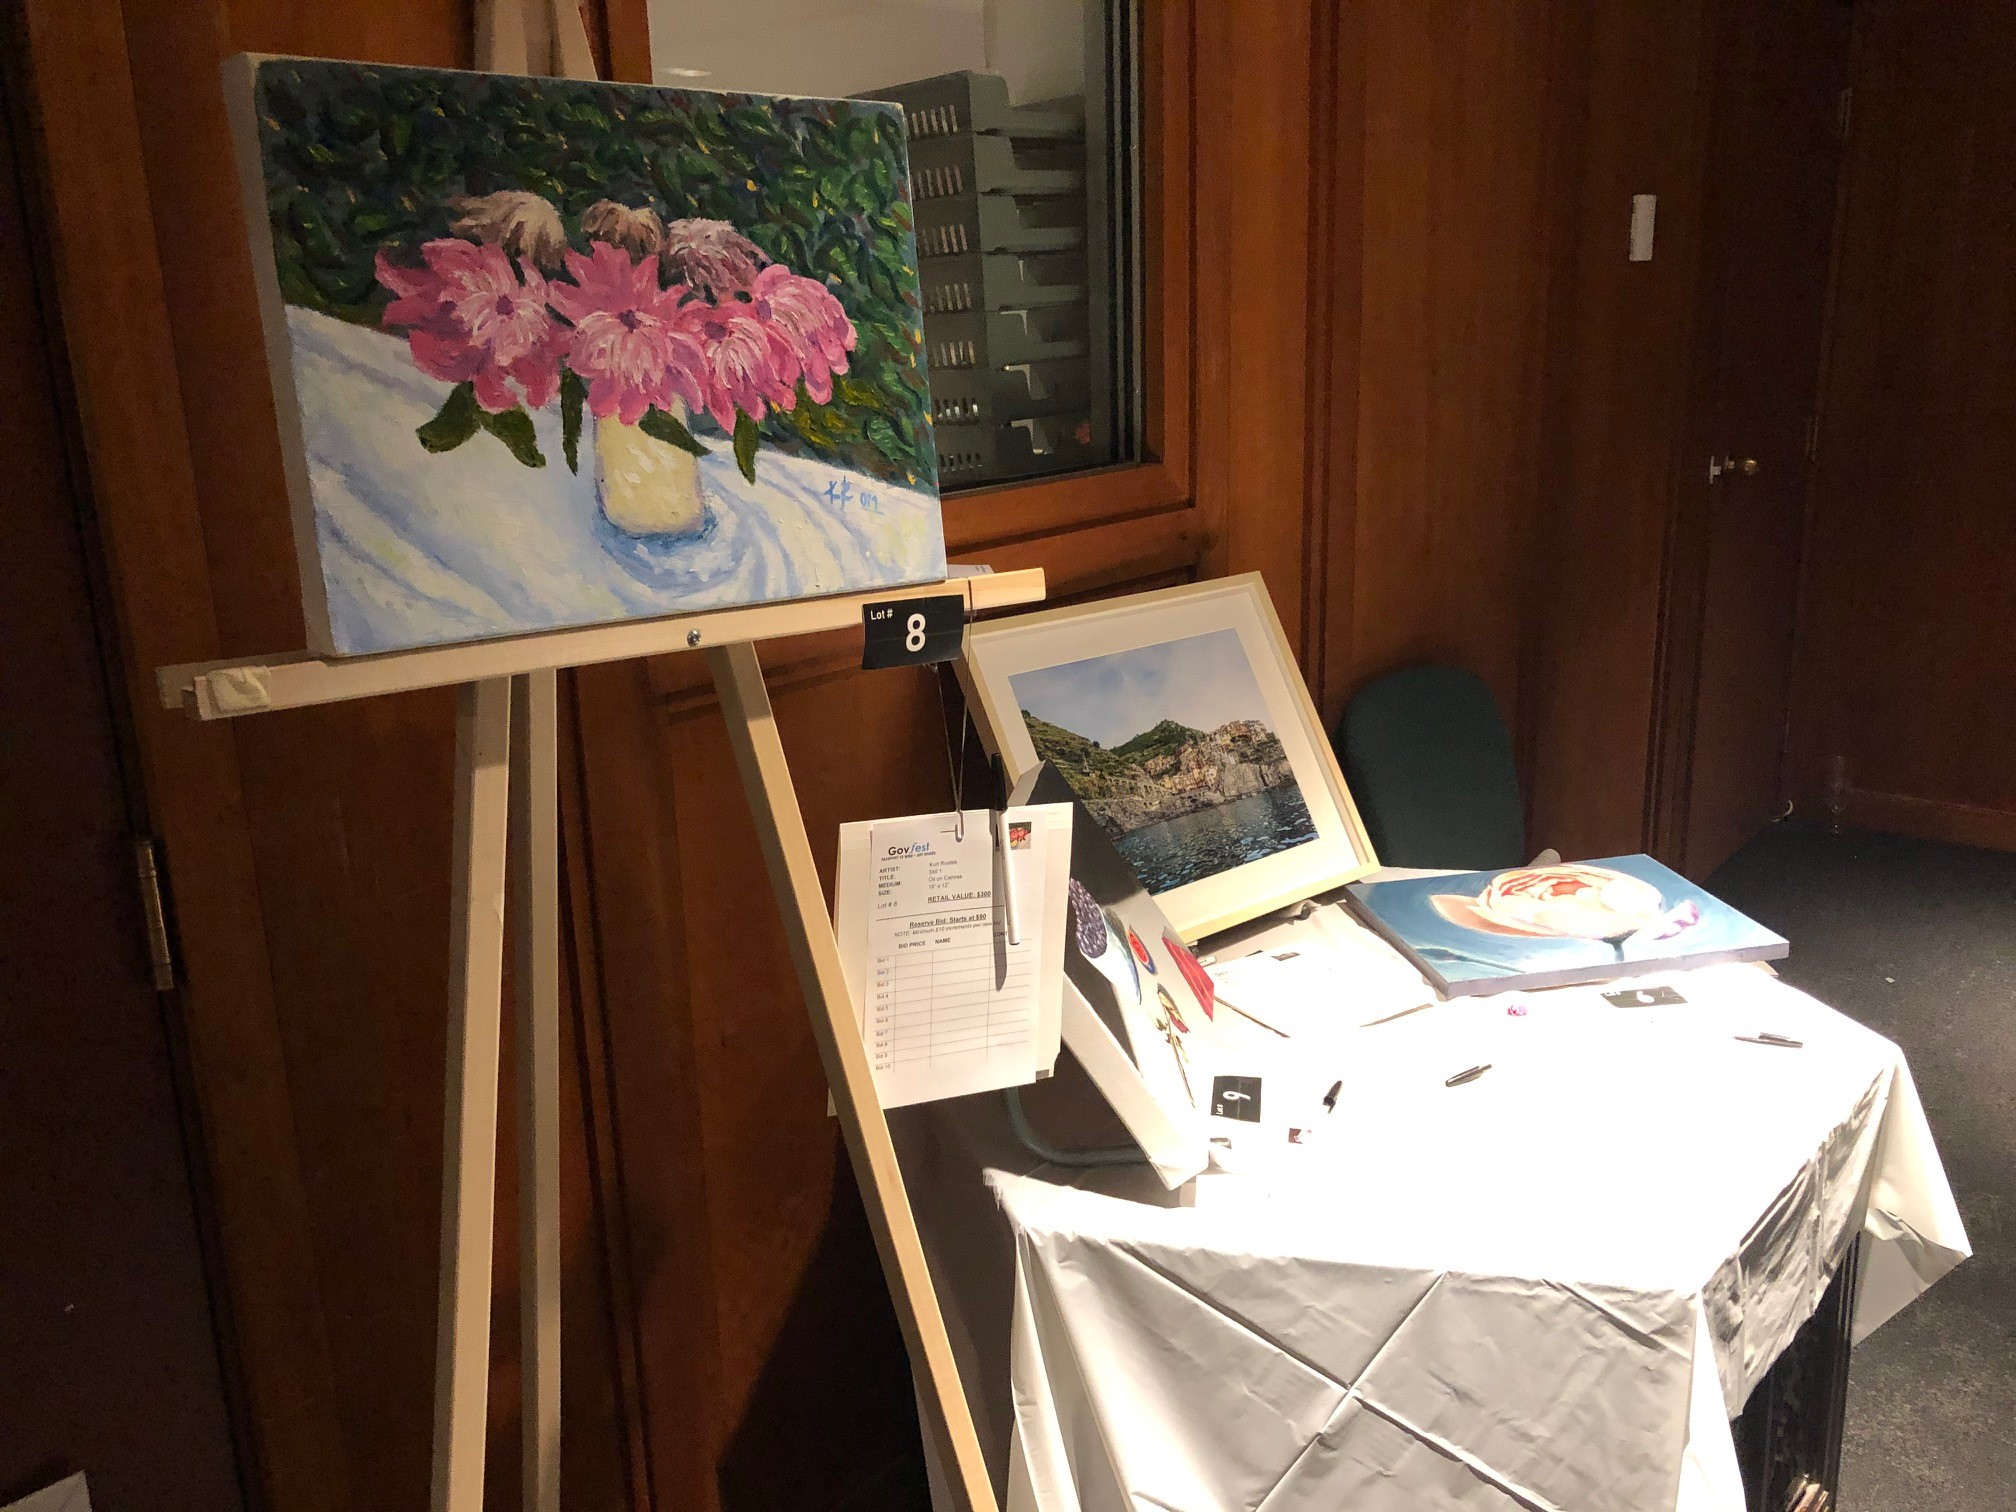 A sampling of the art available at the silent auction